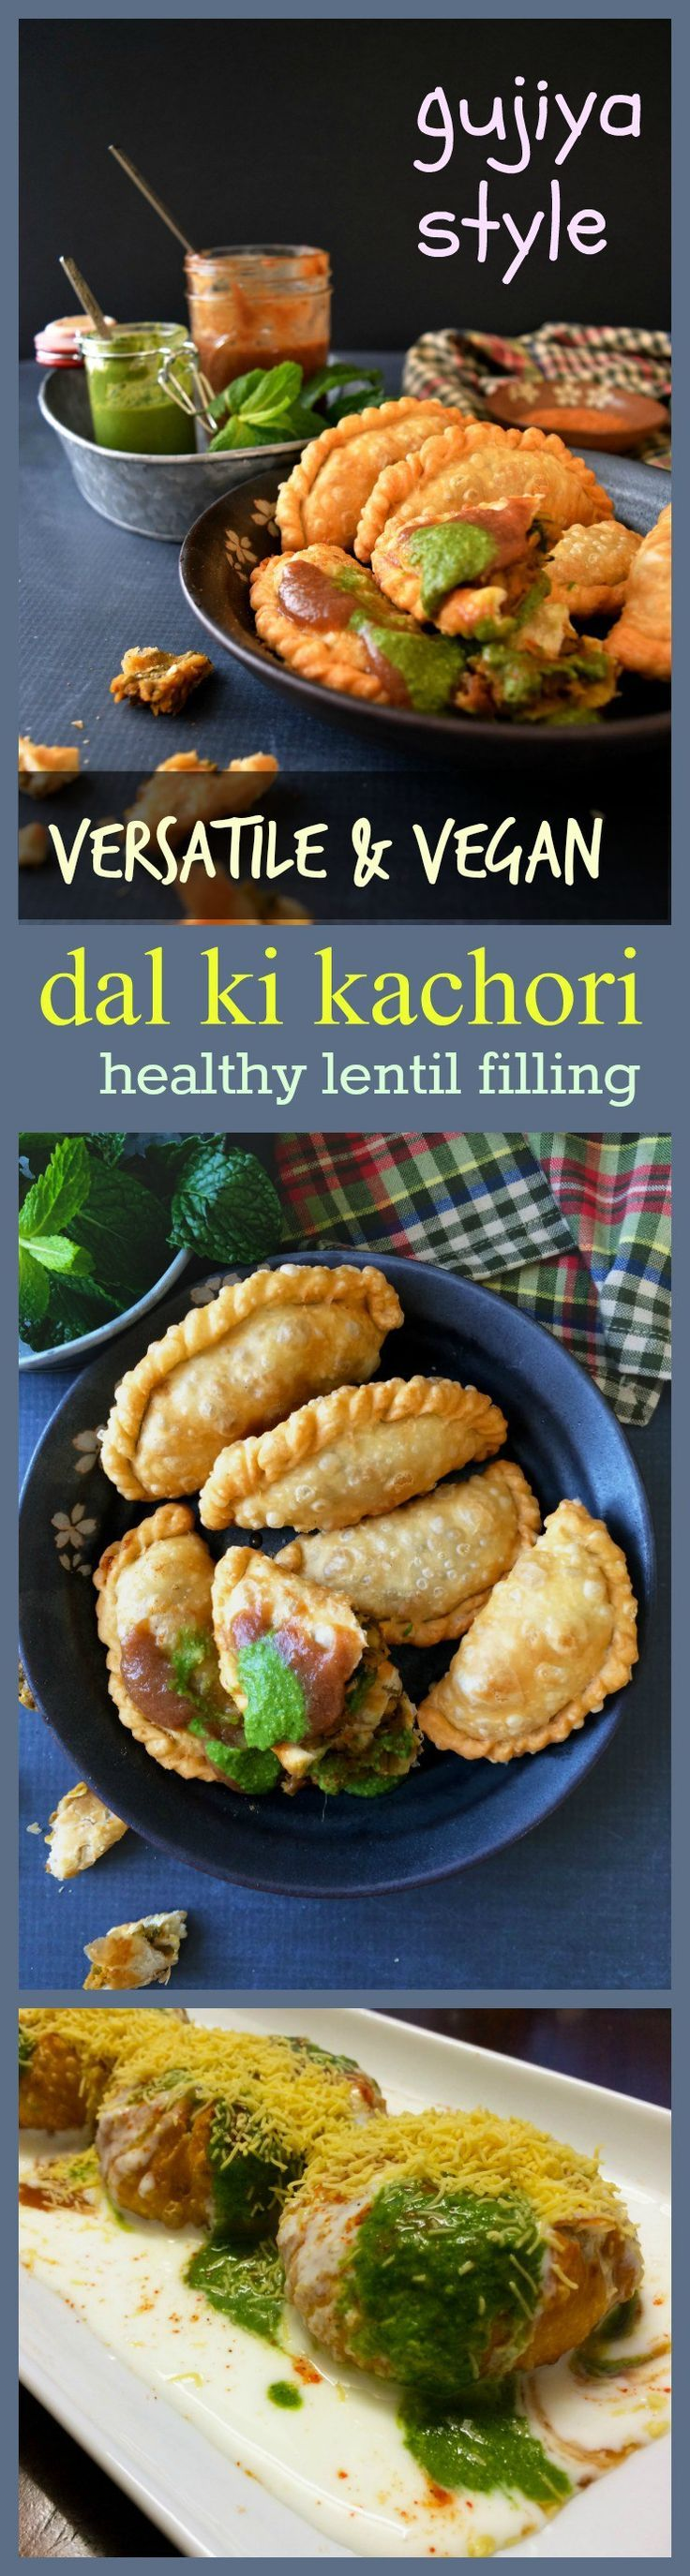 easy dal ki kachori - gujiya style holi special with spicy vegan lentil filling . Step by step pictorial given.